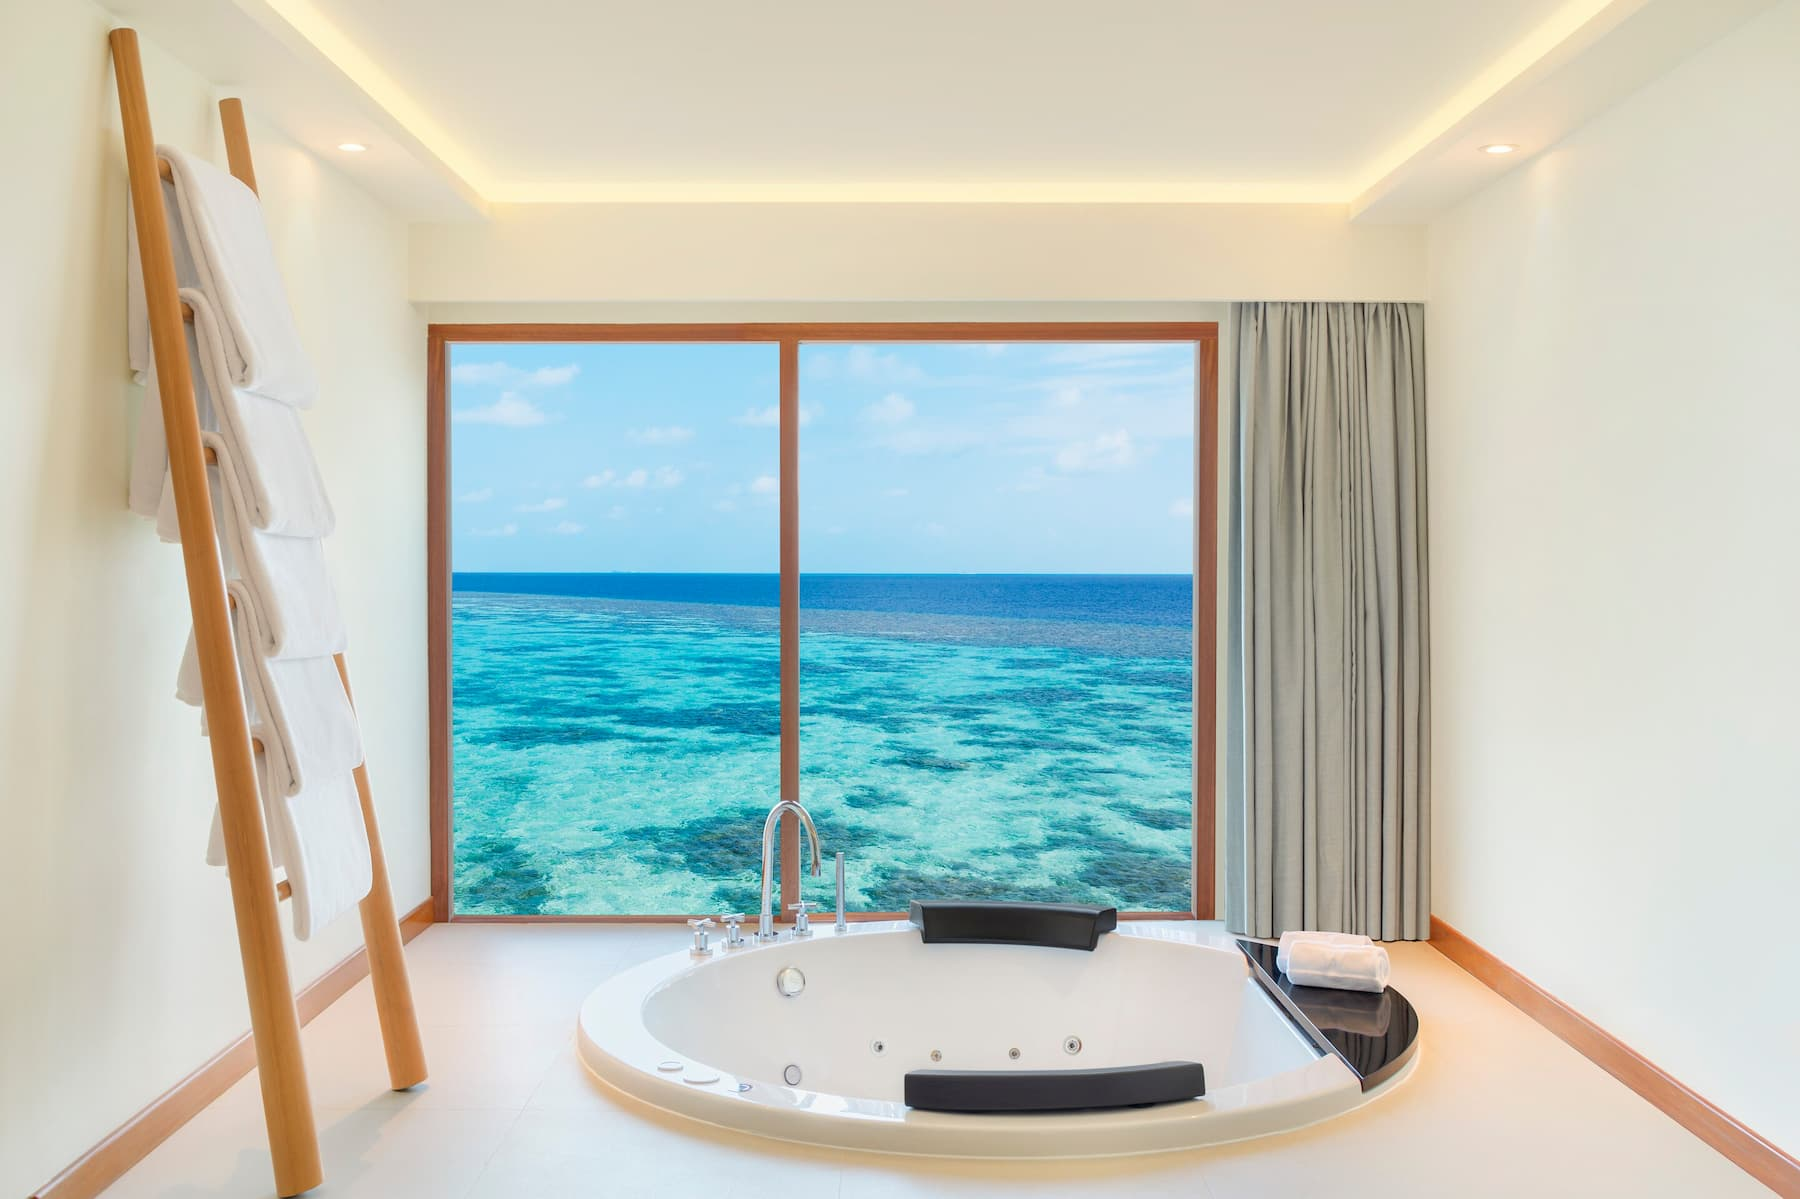 Resort Maldive W Maldives ocean haven